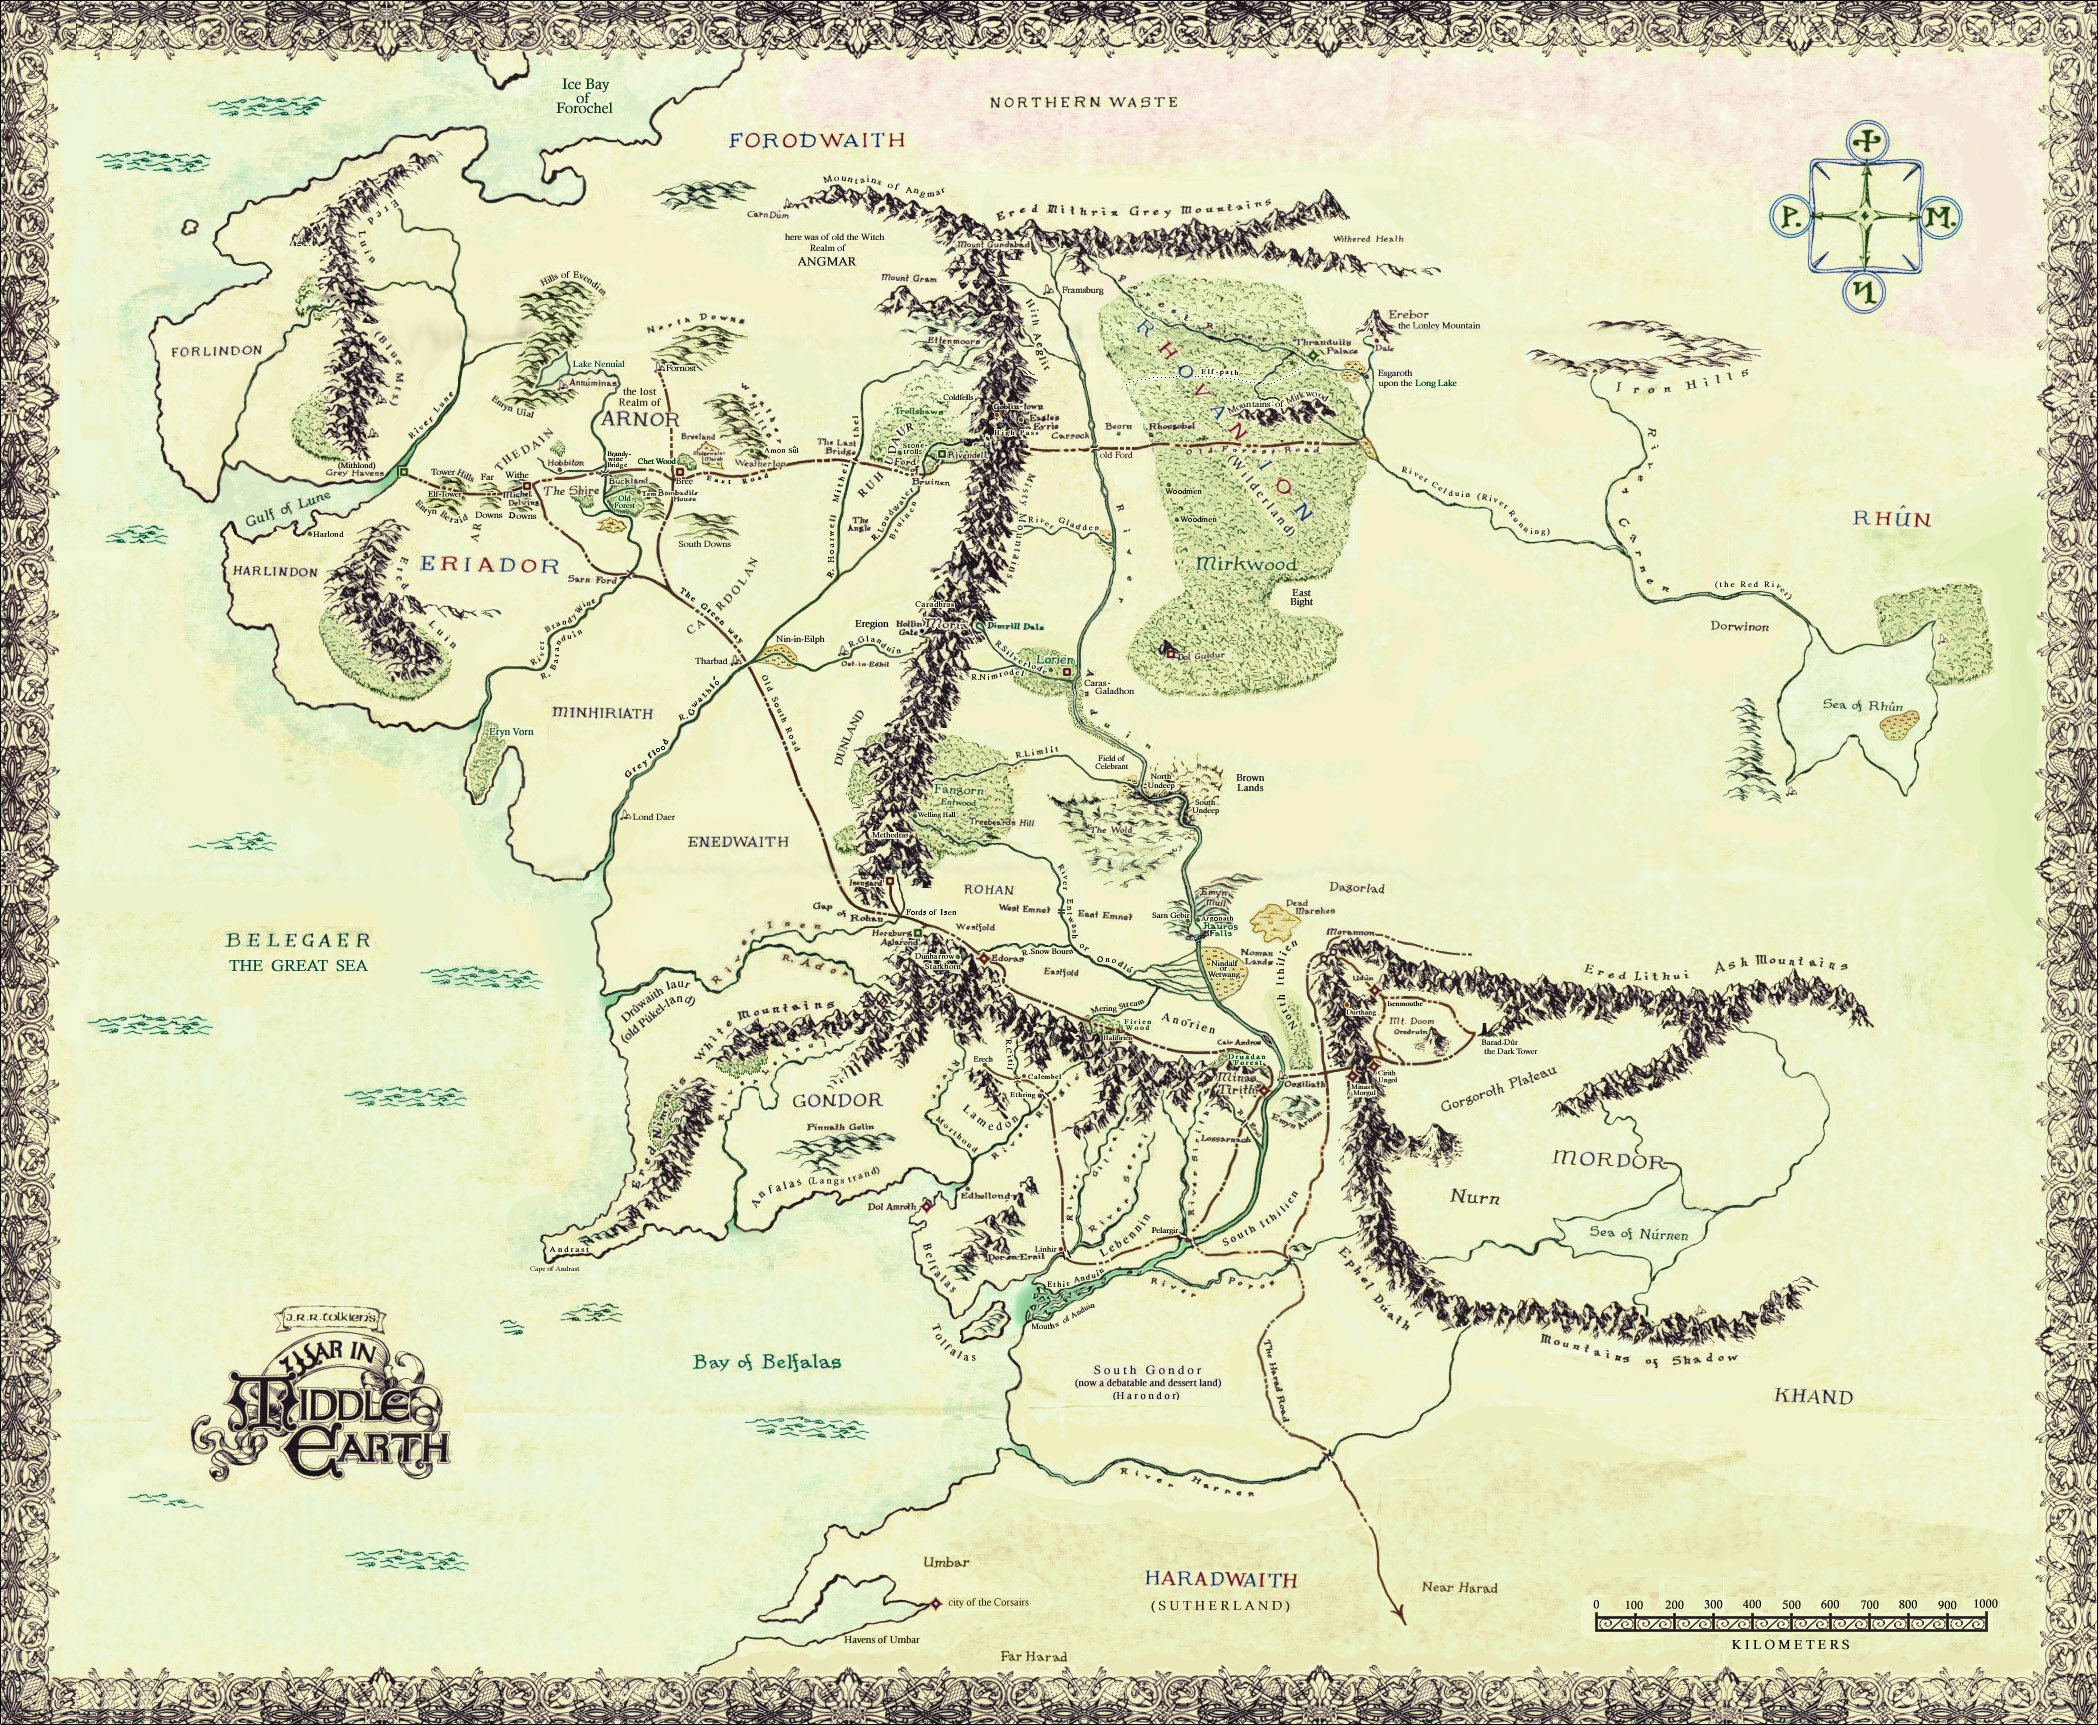 http://chronarda.ru/arda/geografy/maps/middle.earth.jpg